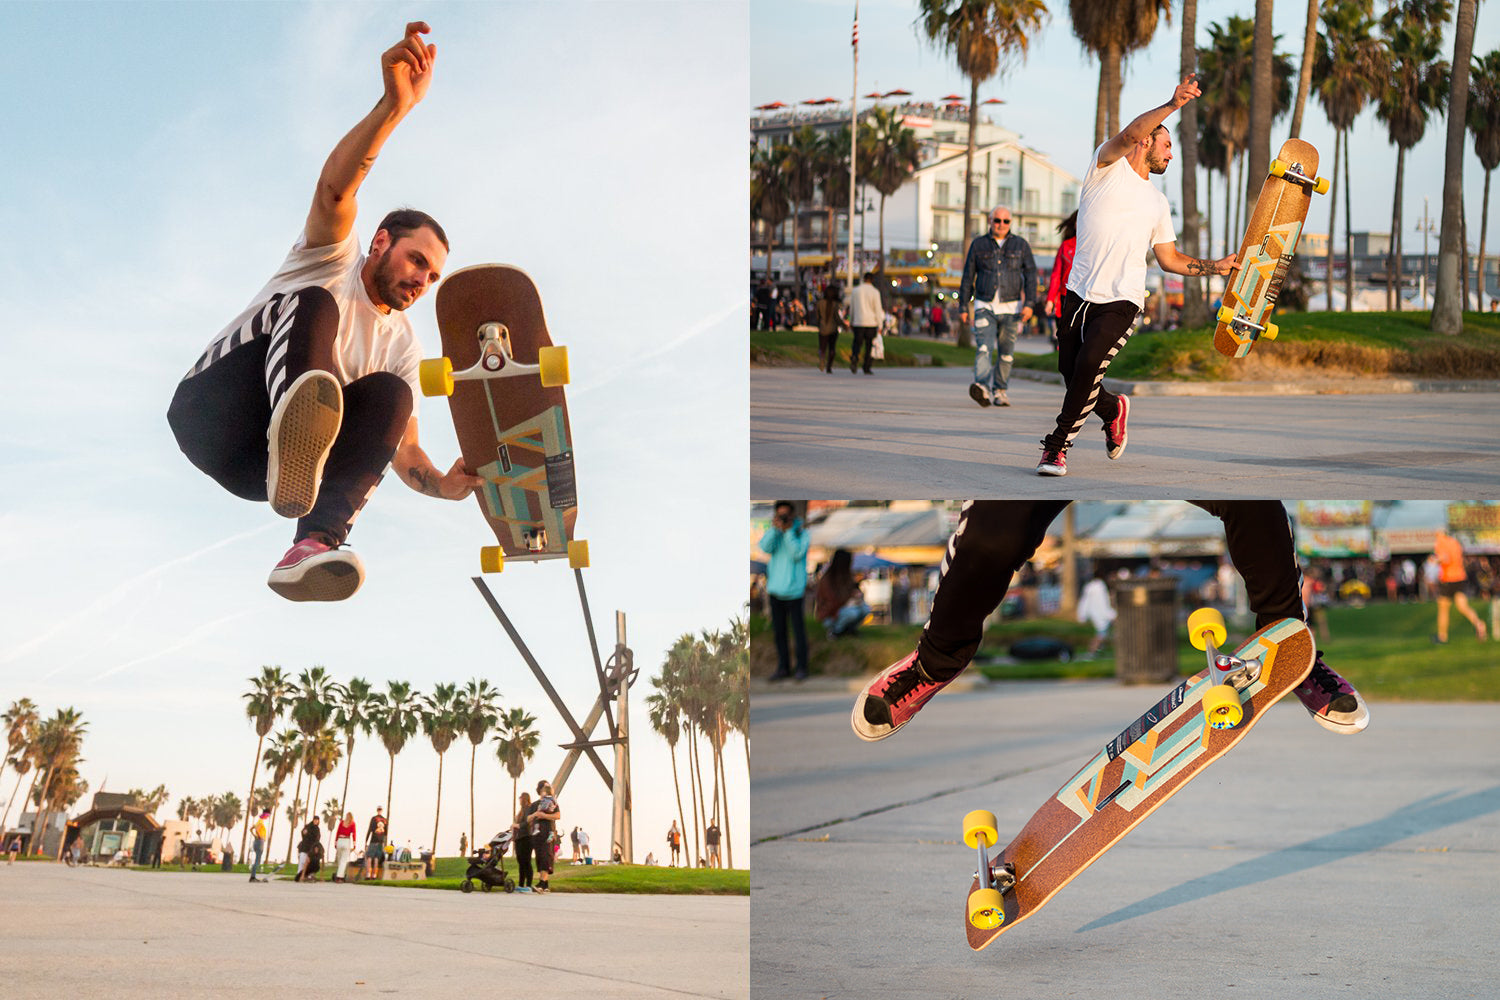 Corey Cade at Docksession Los Angeles riding the Basalt Tesseract by Loaded Boards